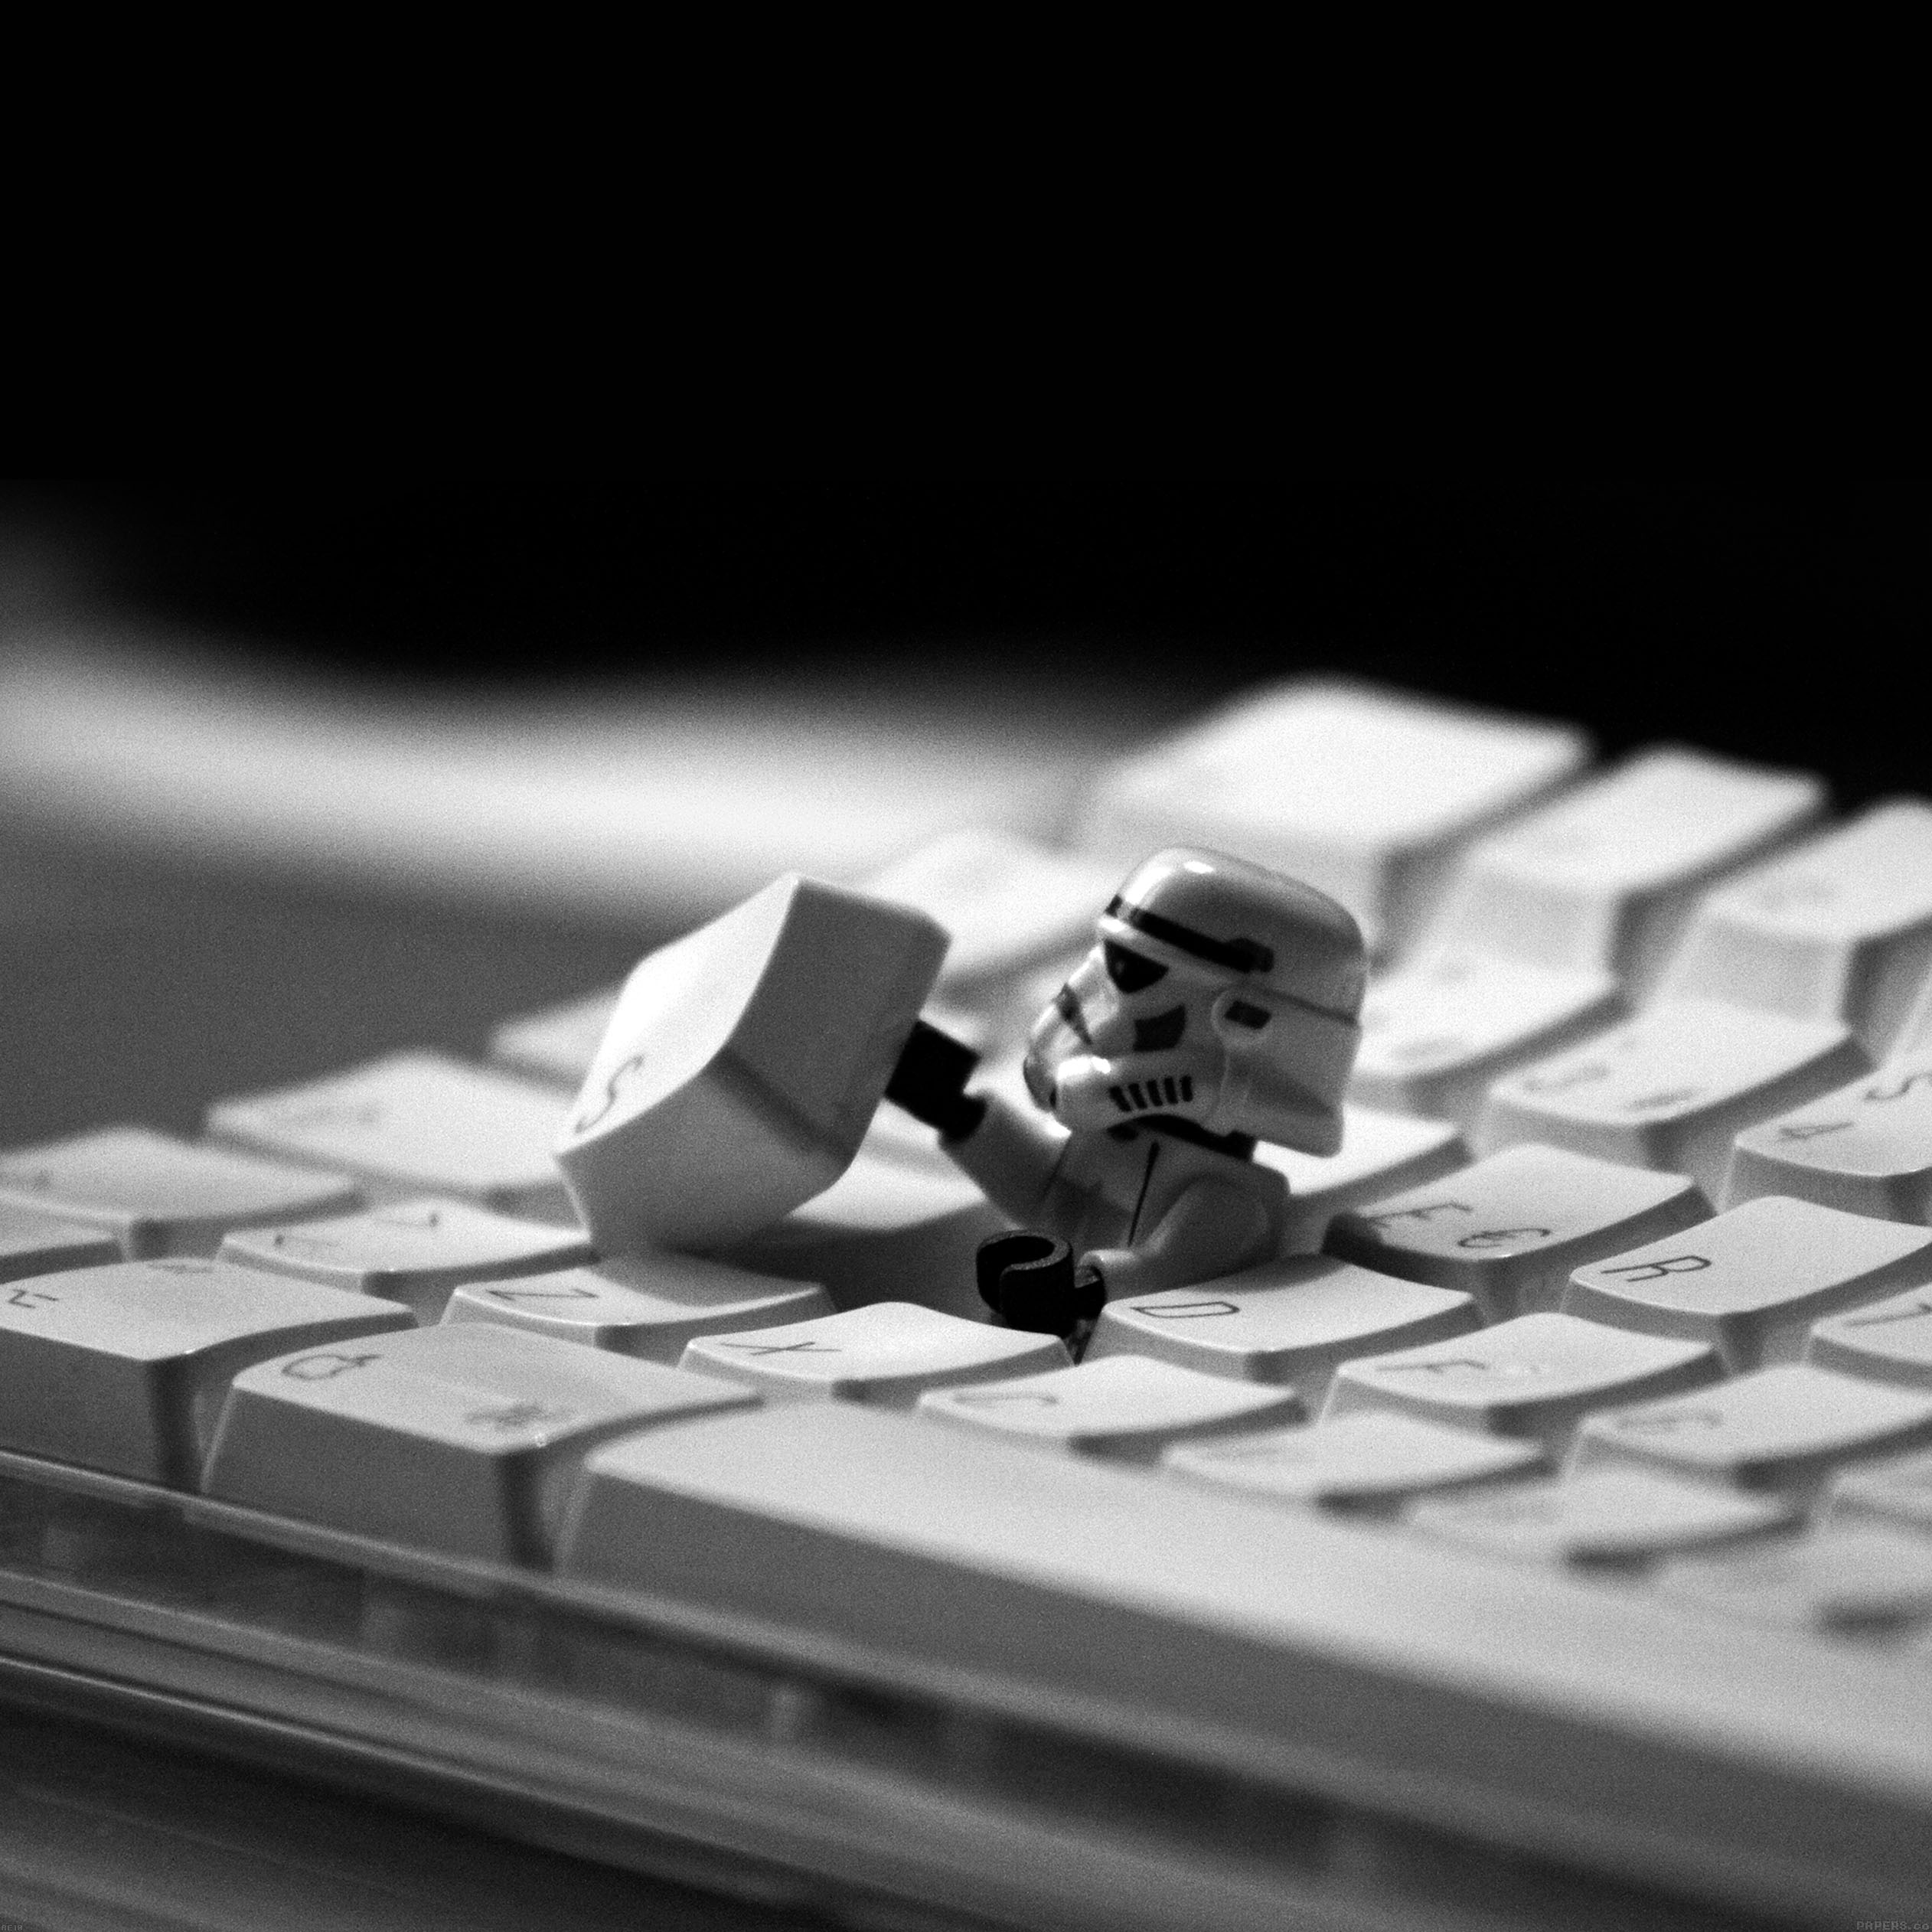 storm-trooper-starwars-keyboard-film-9-wallpaper